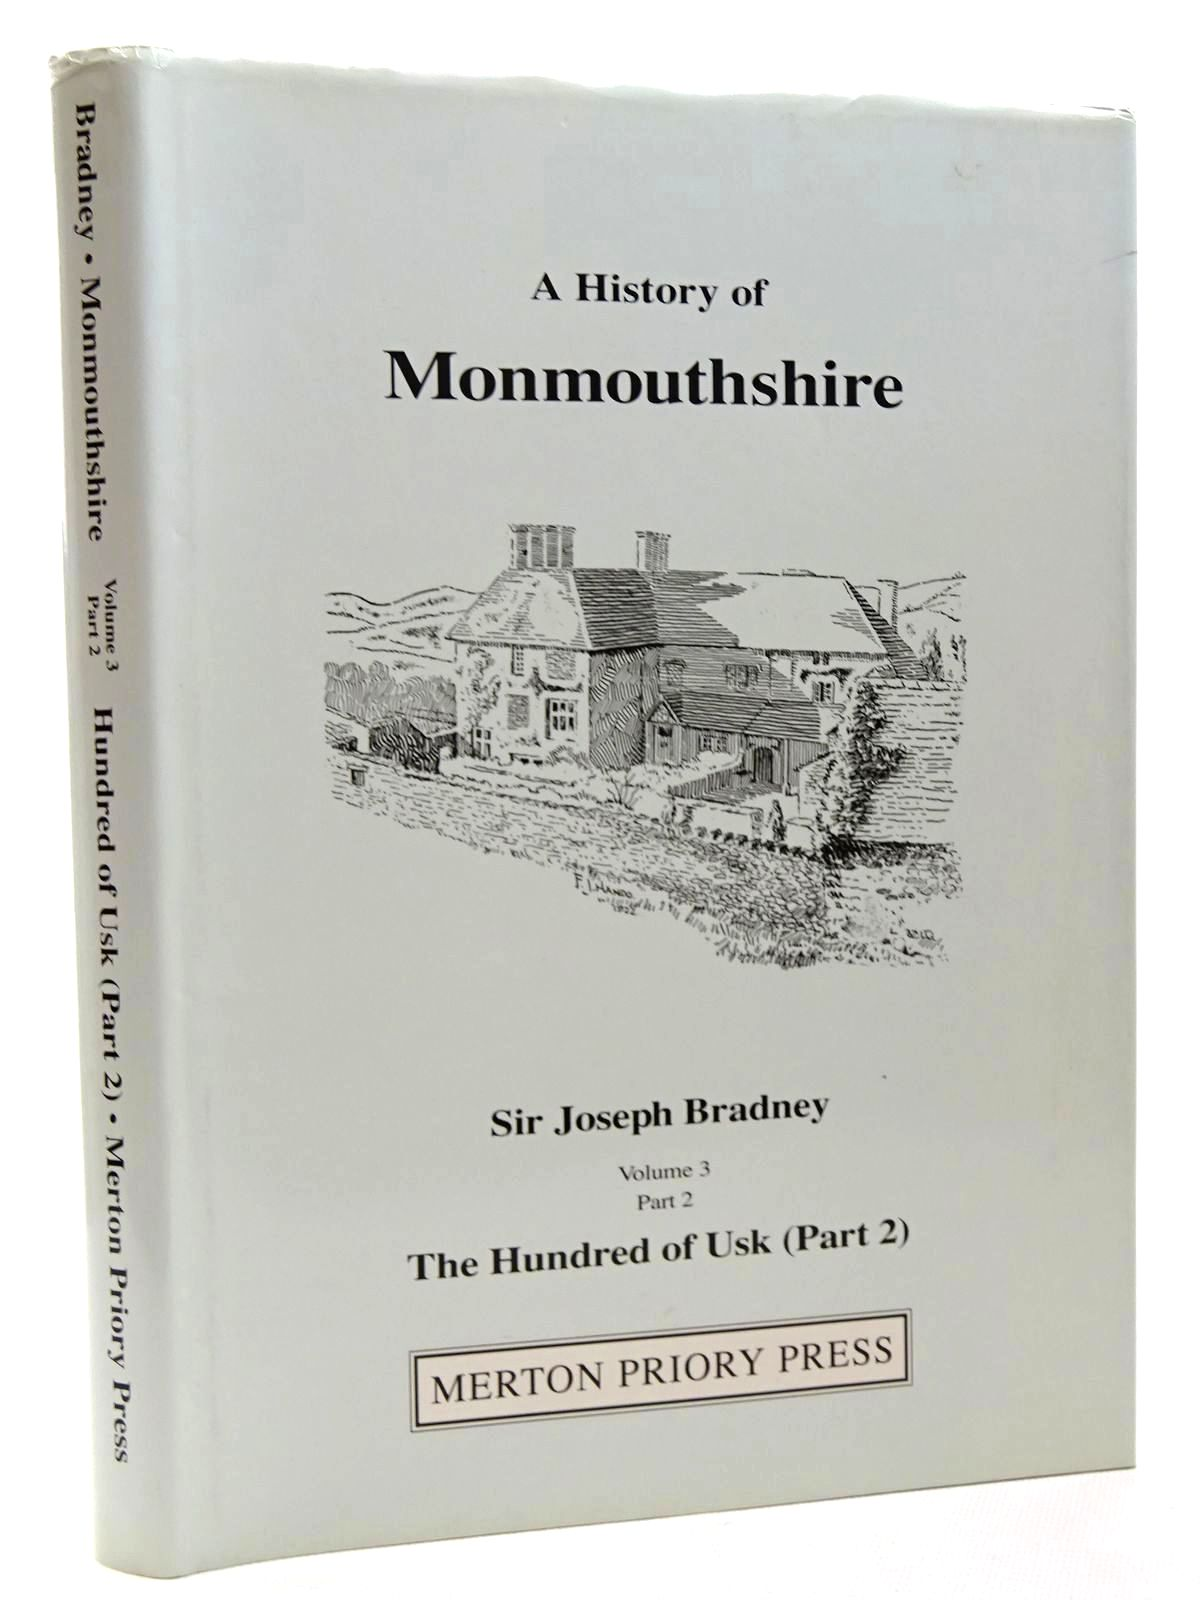 Photo of A HISTORY OF MONMOUTHSHIRE THE HUNDRED OF USK PART 2 written by Bradney, Joseph published by Merton Priory Press (STOCK CODE: 2124693)  for sale by Stella & Rose's Books